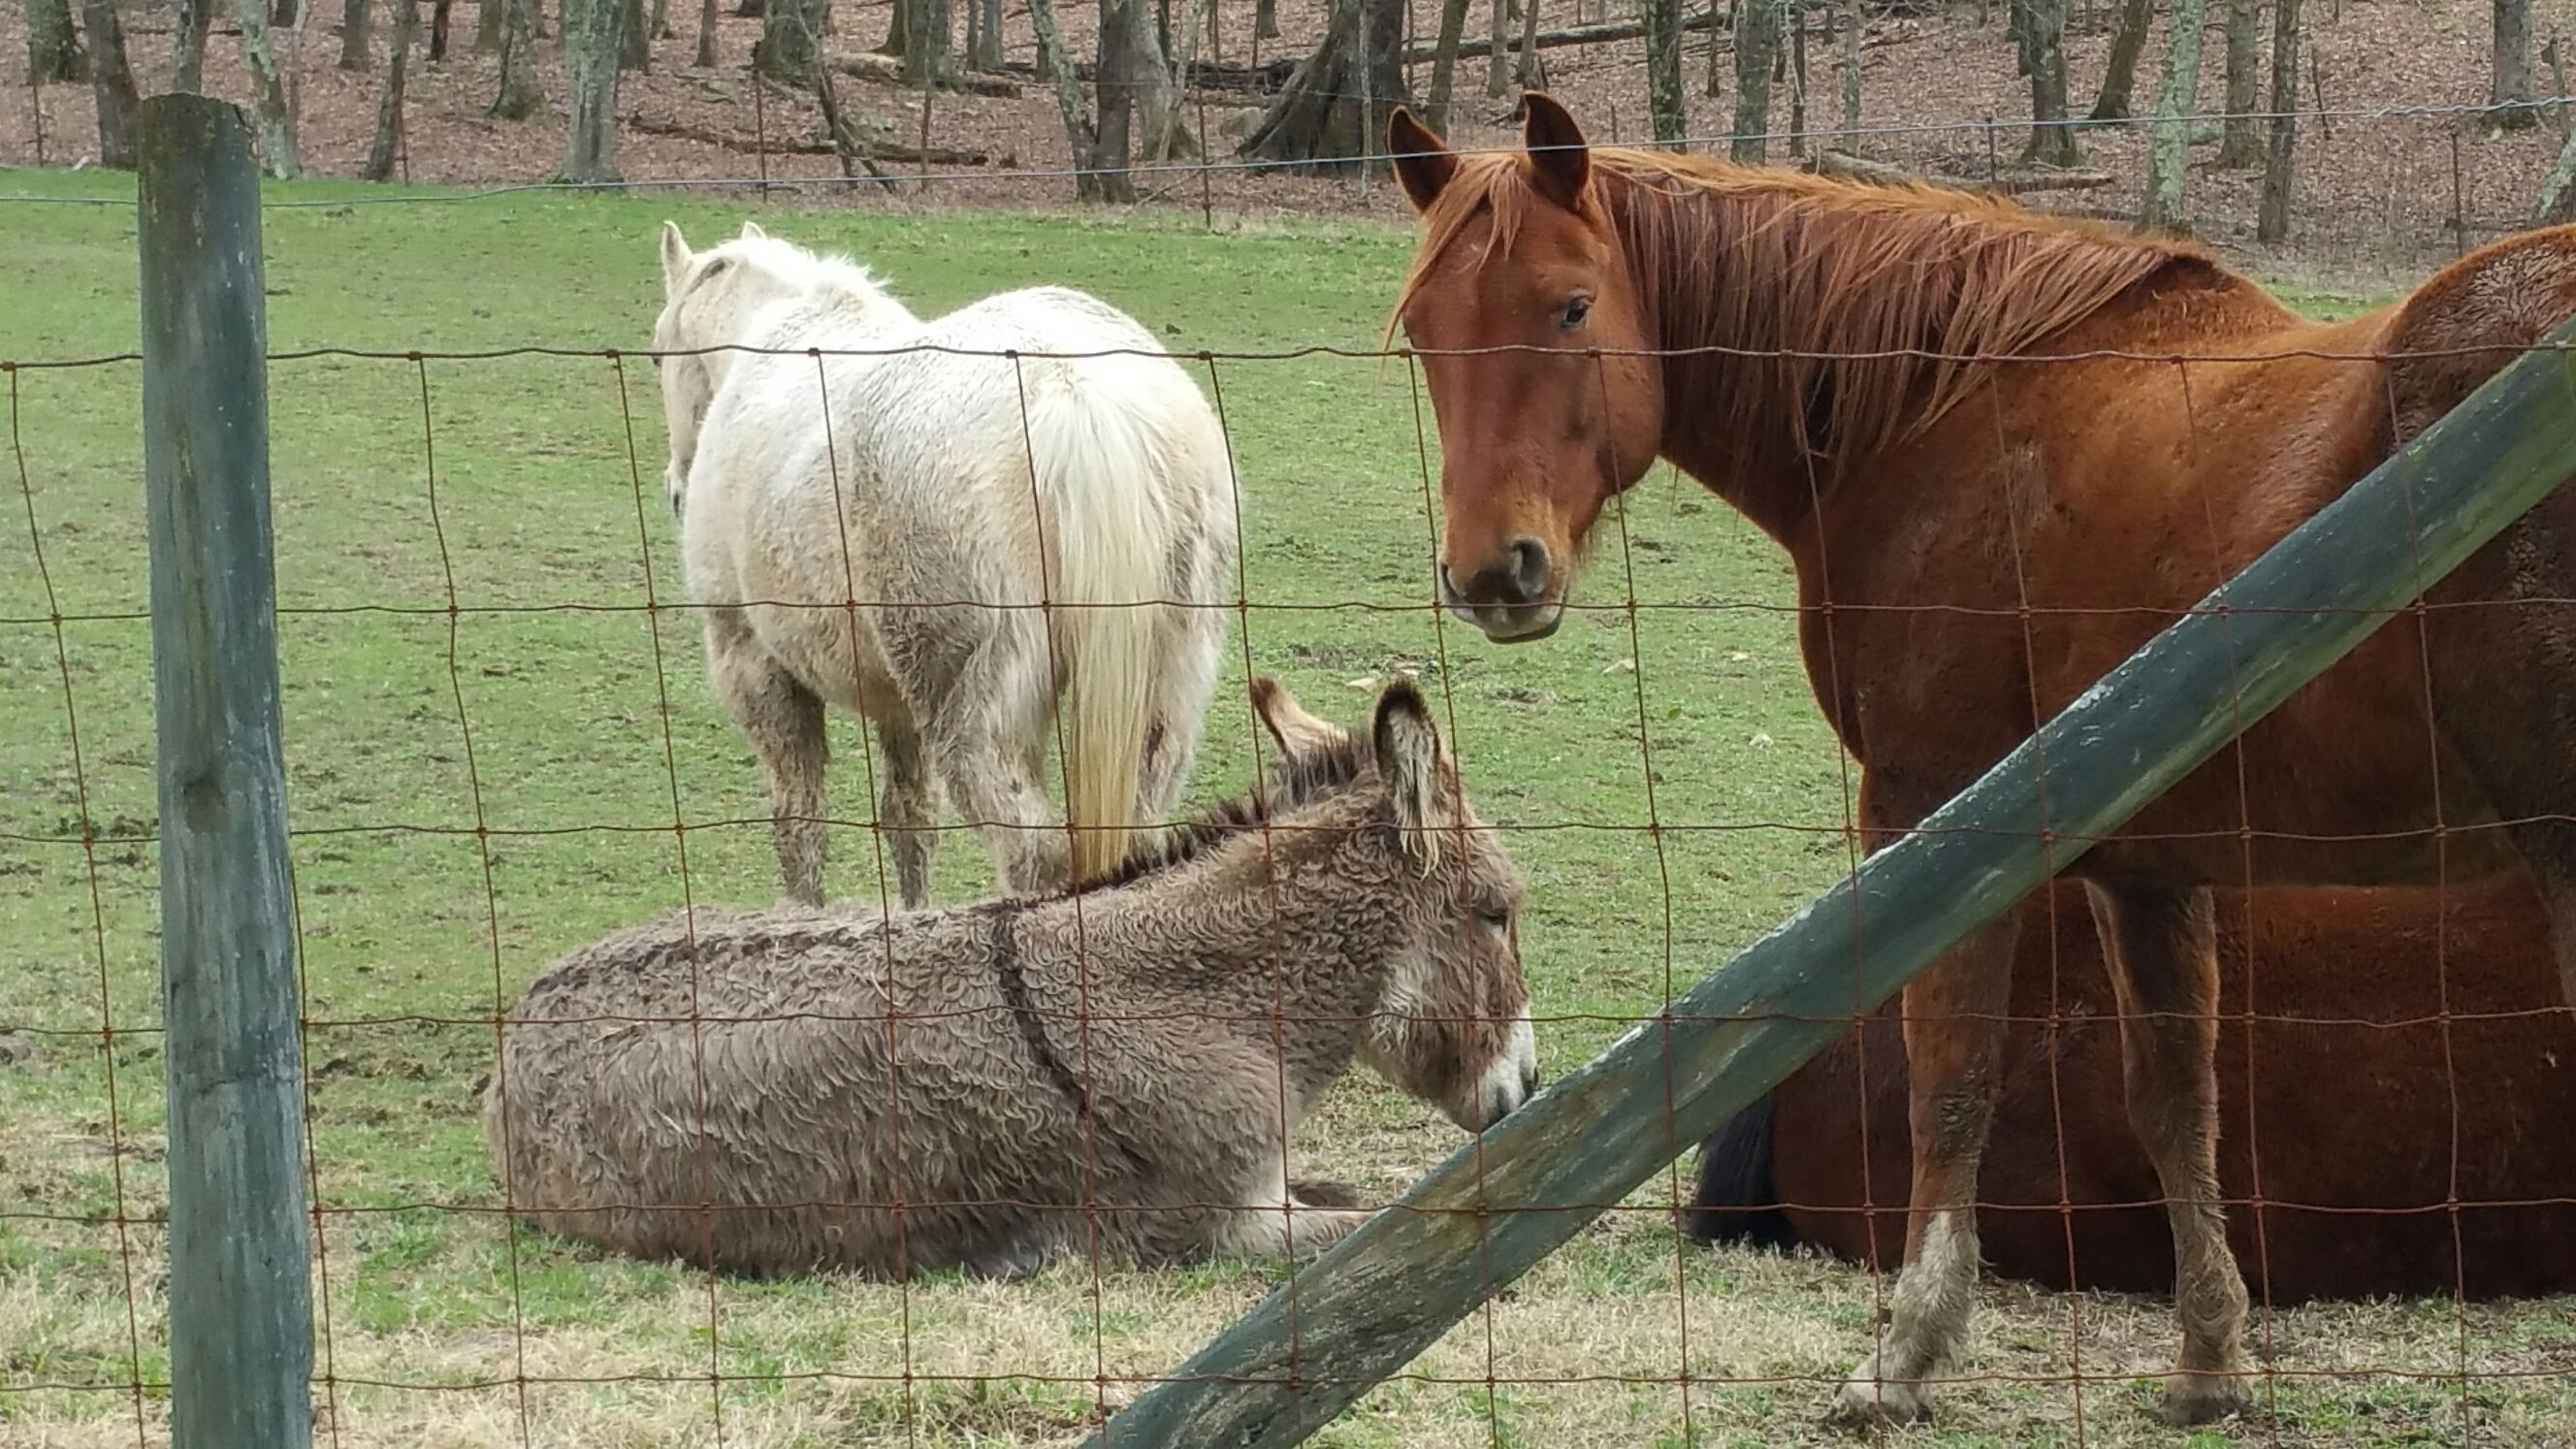 Horses And Donkey On Grassy Field Seen Through Fence